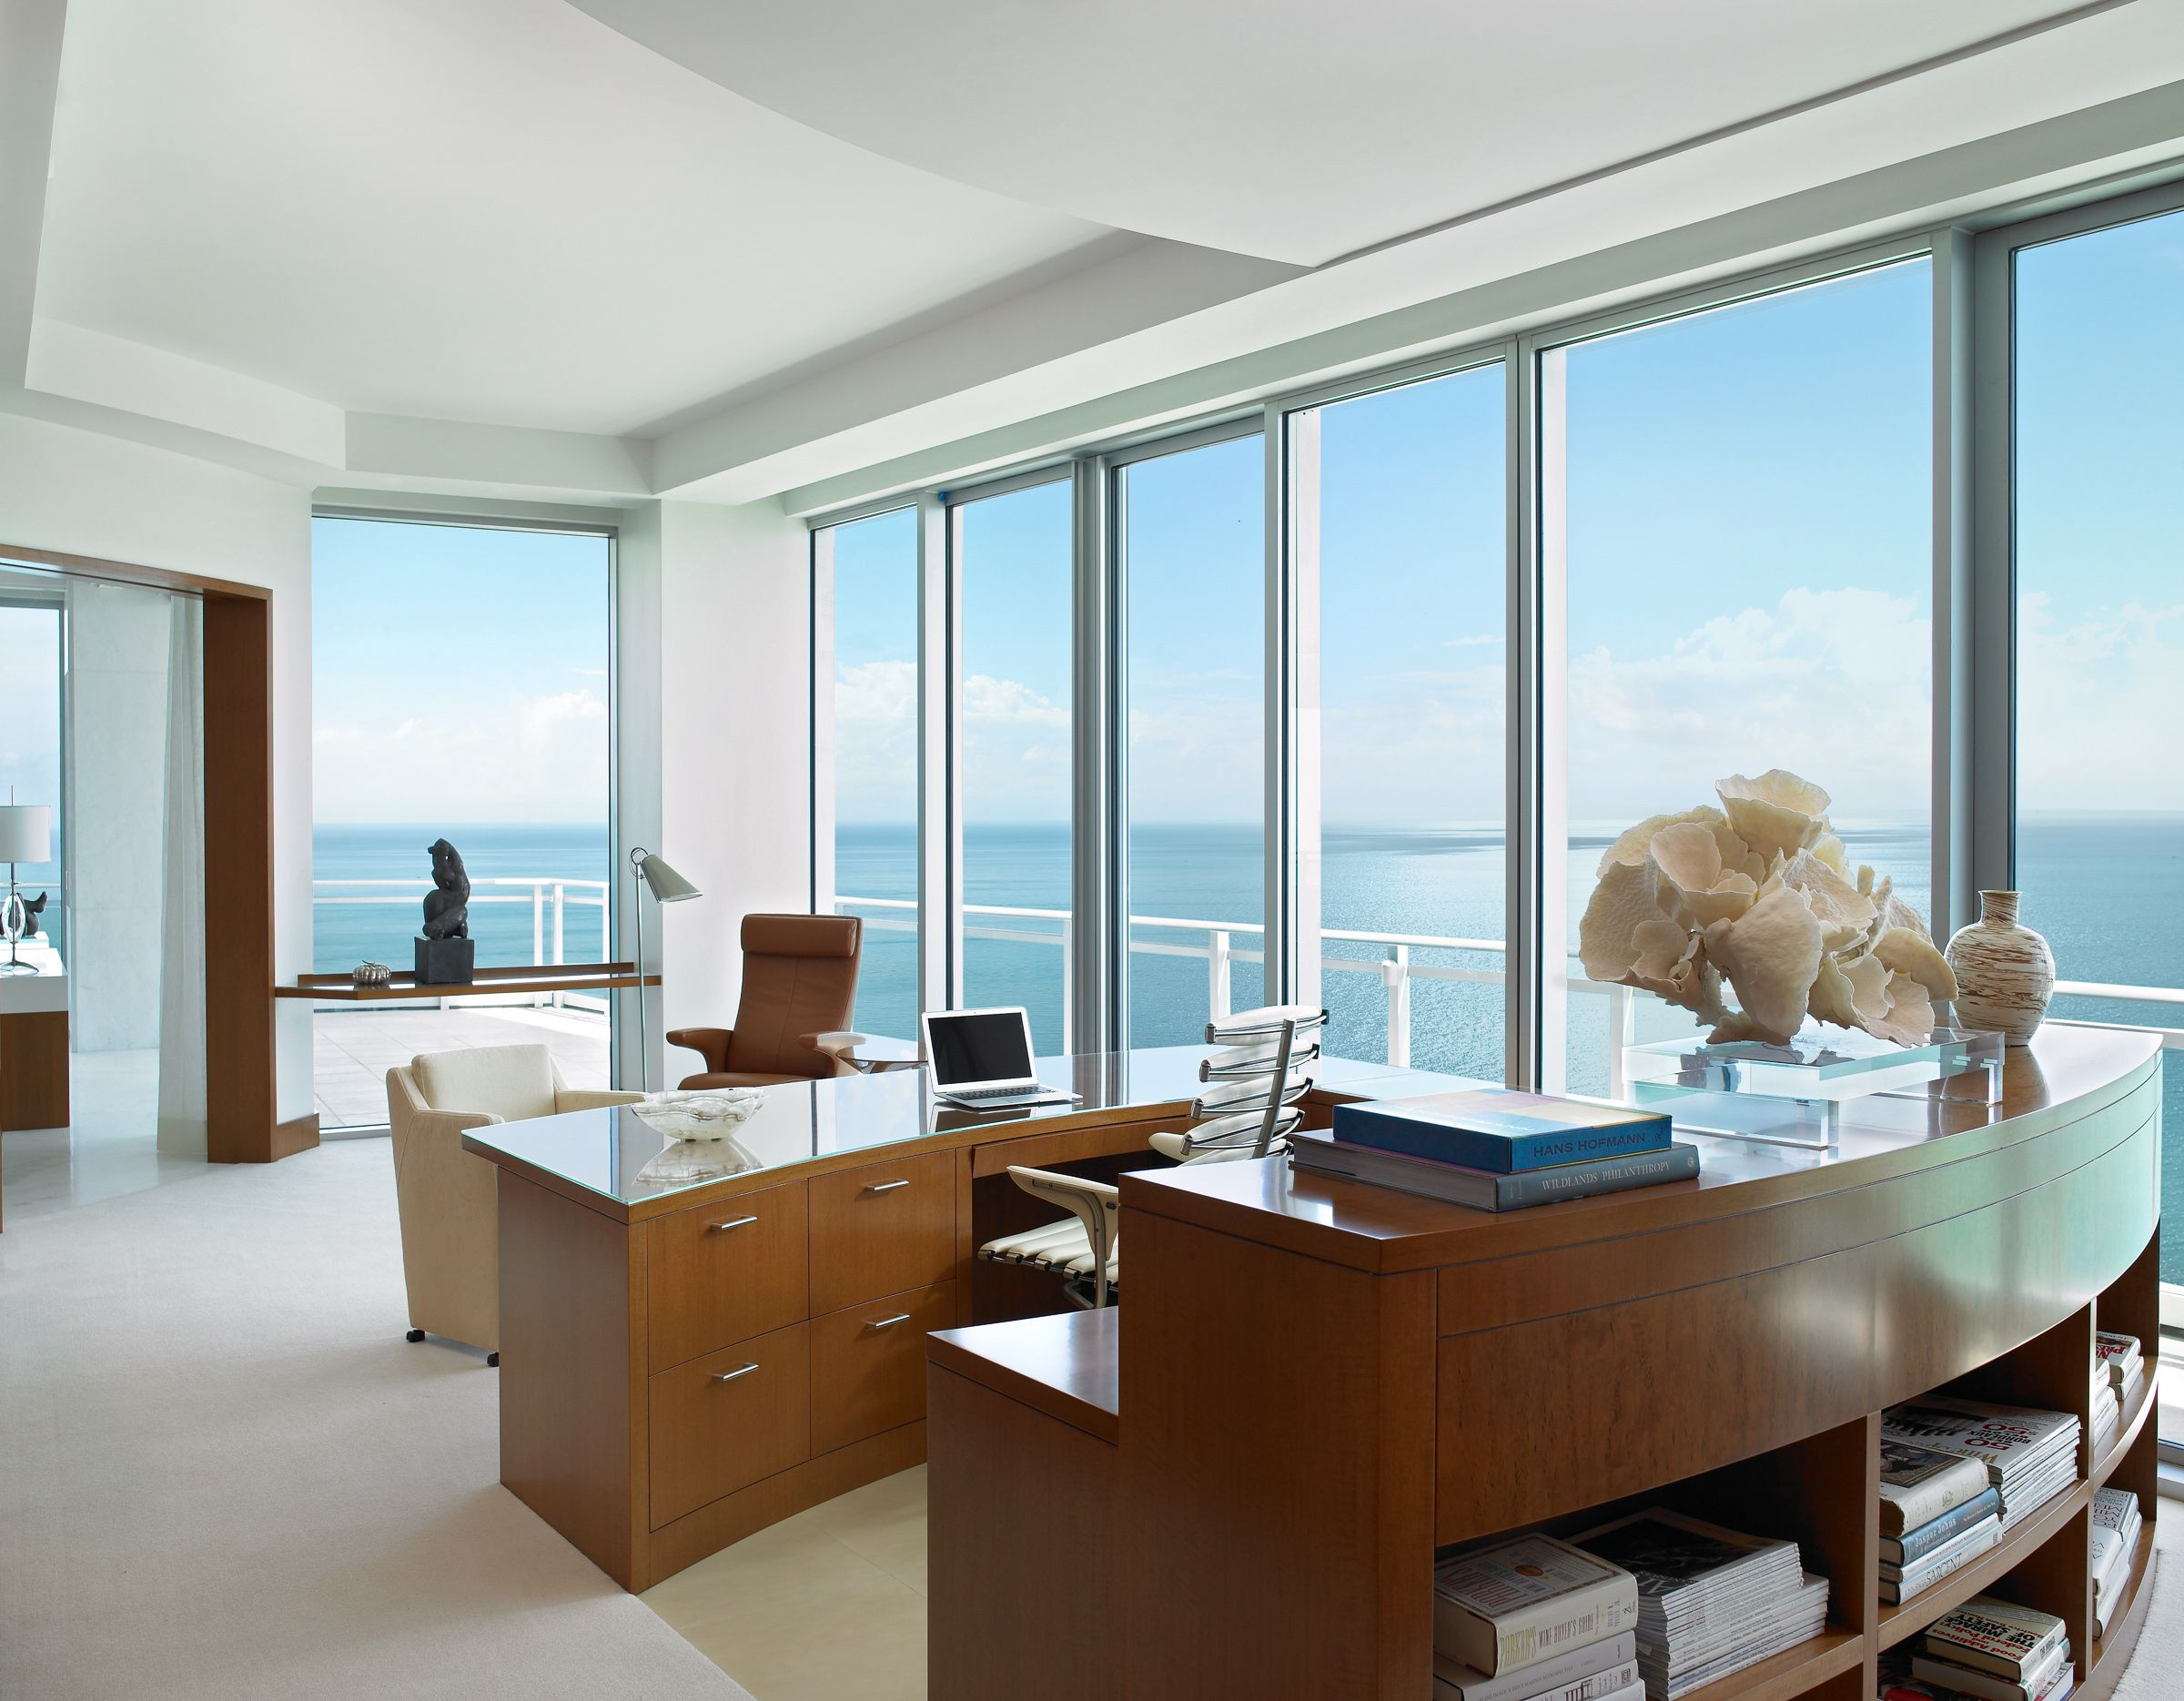 The oceanfront home office is complete with every detail